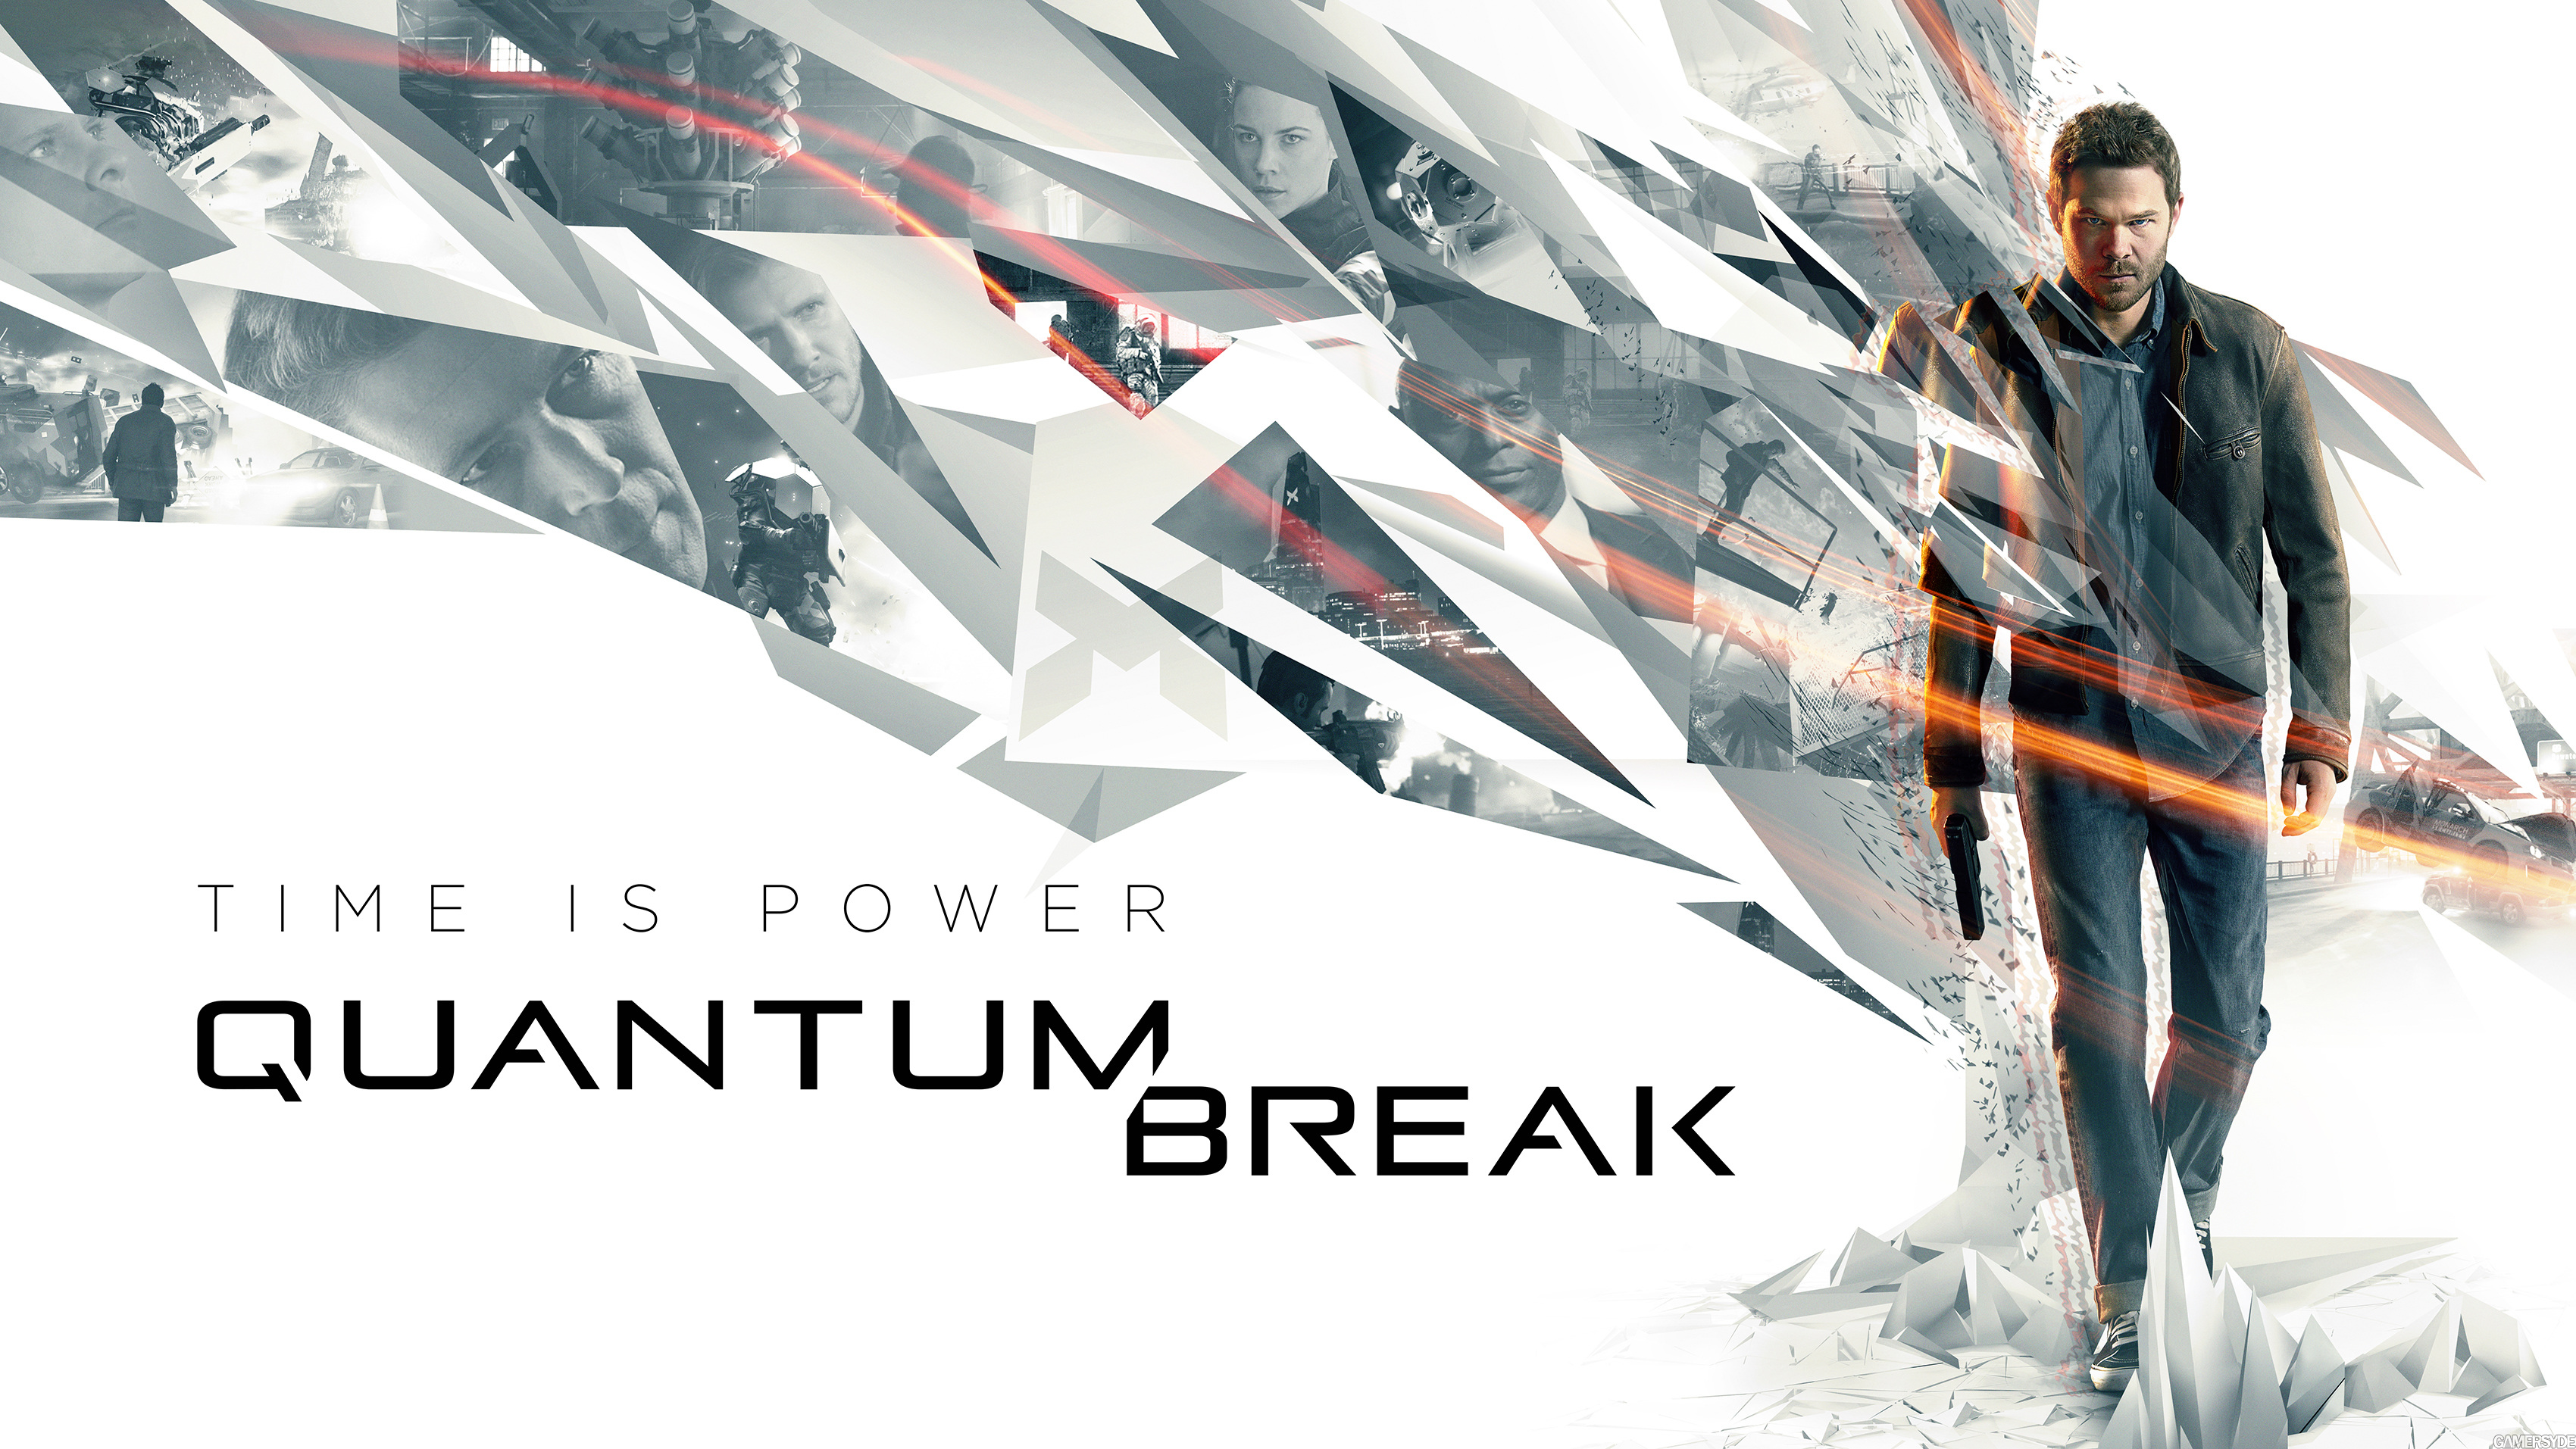 yaz4_image_quantum_break-29067-2722_0001.jpg